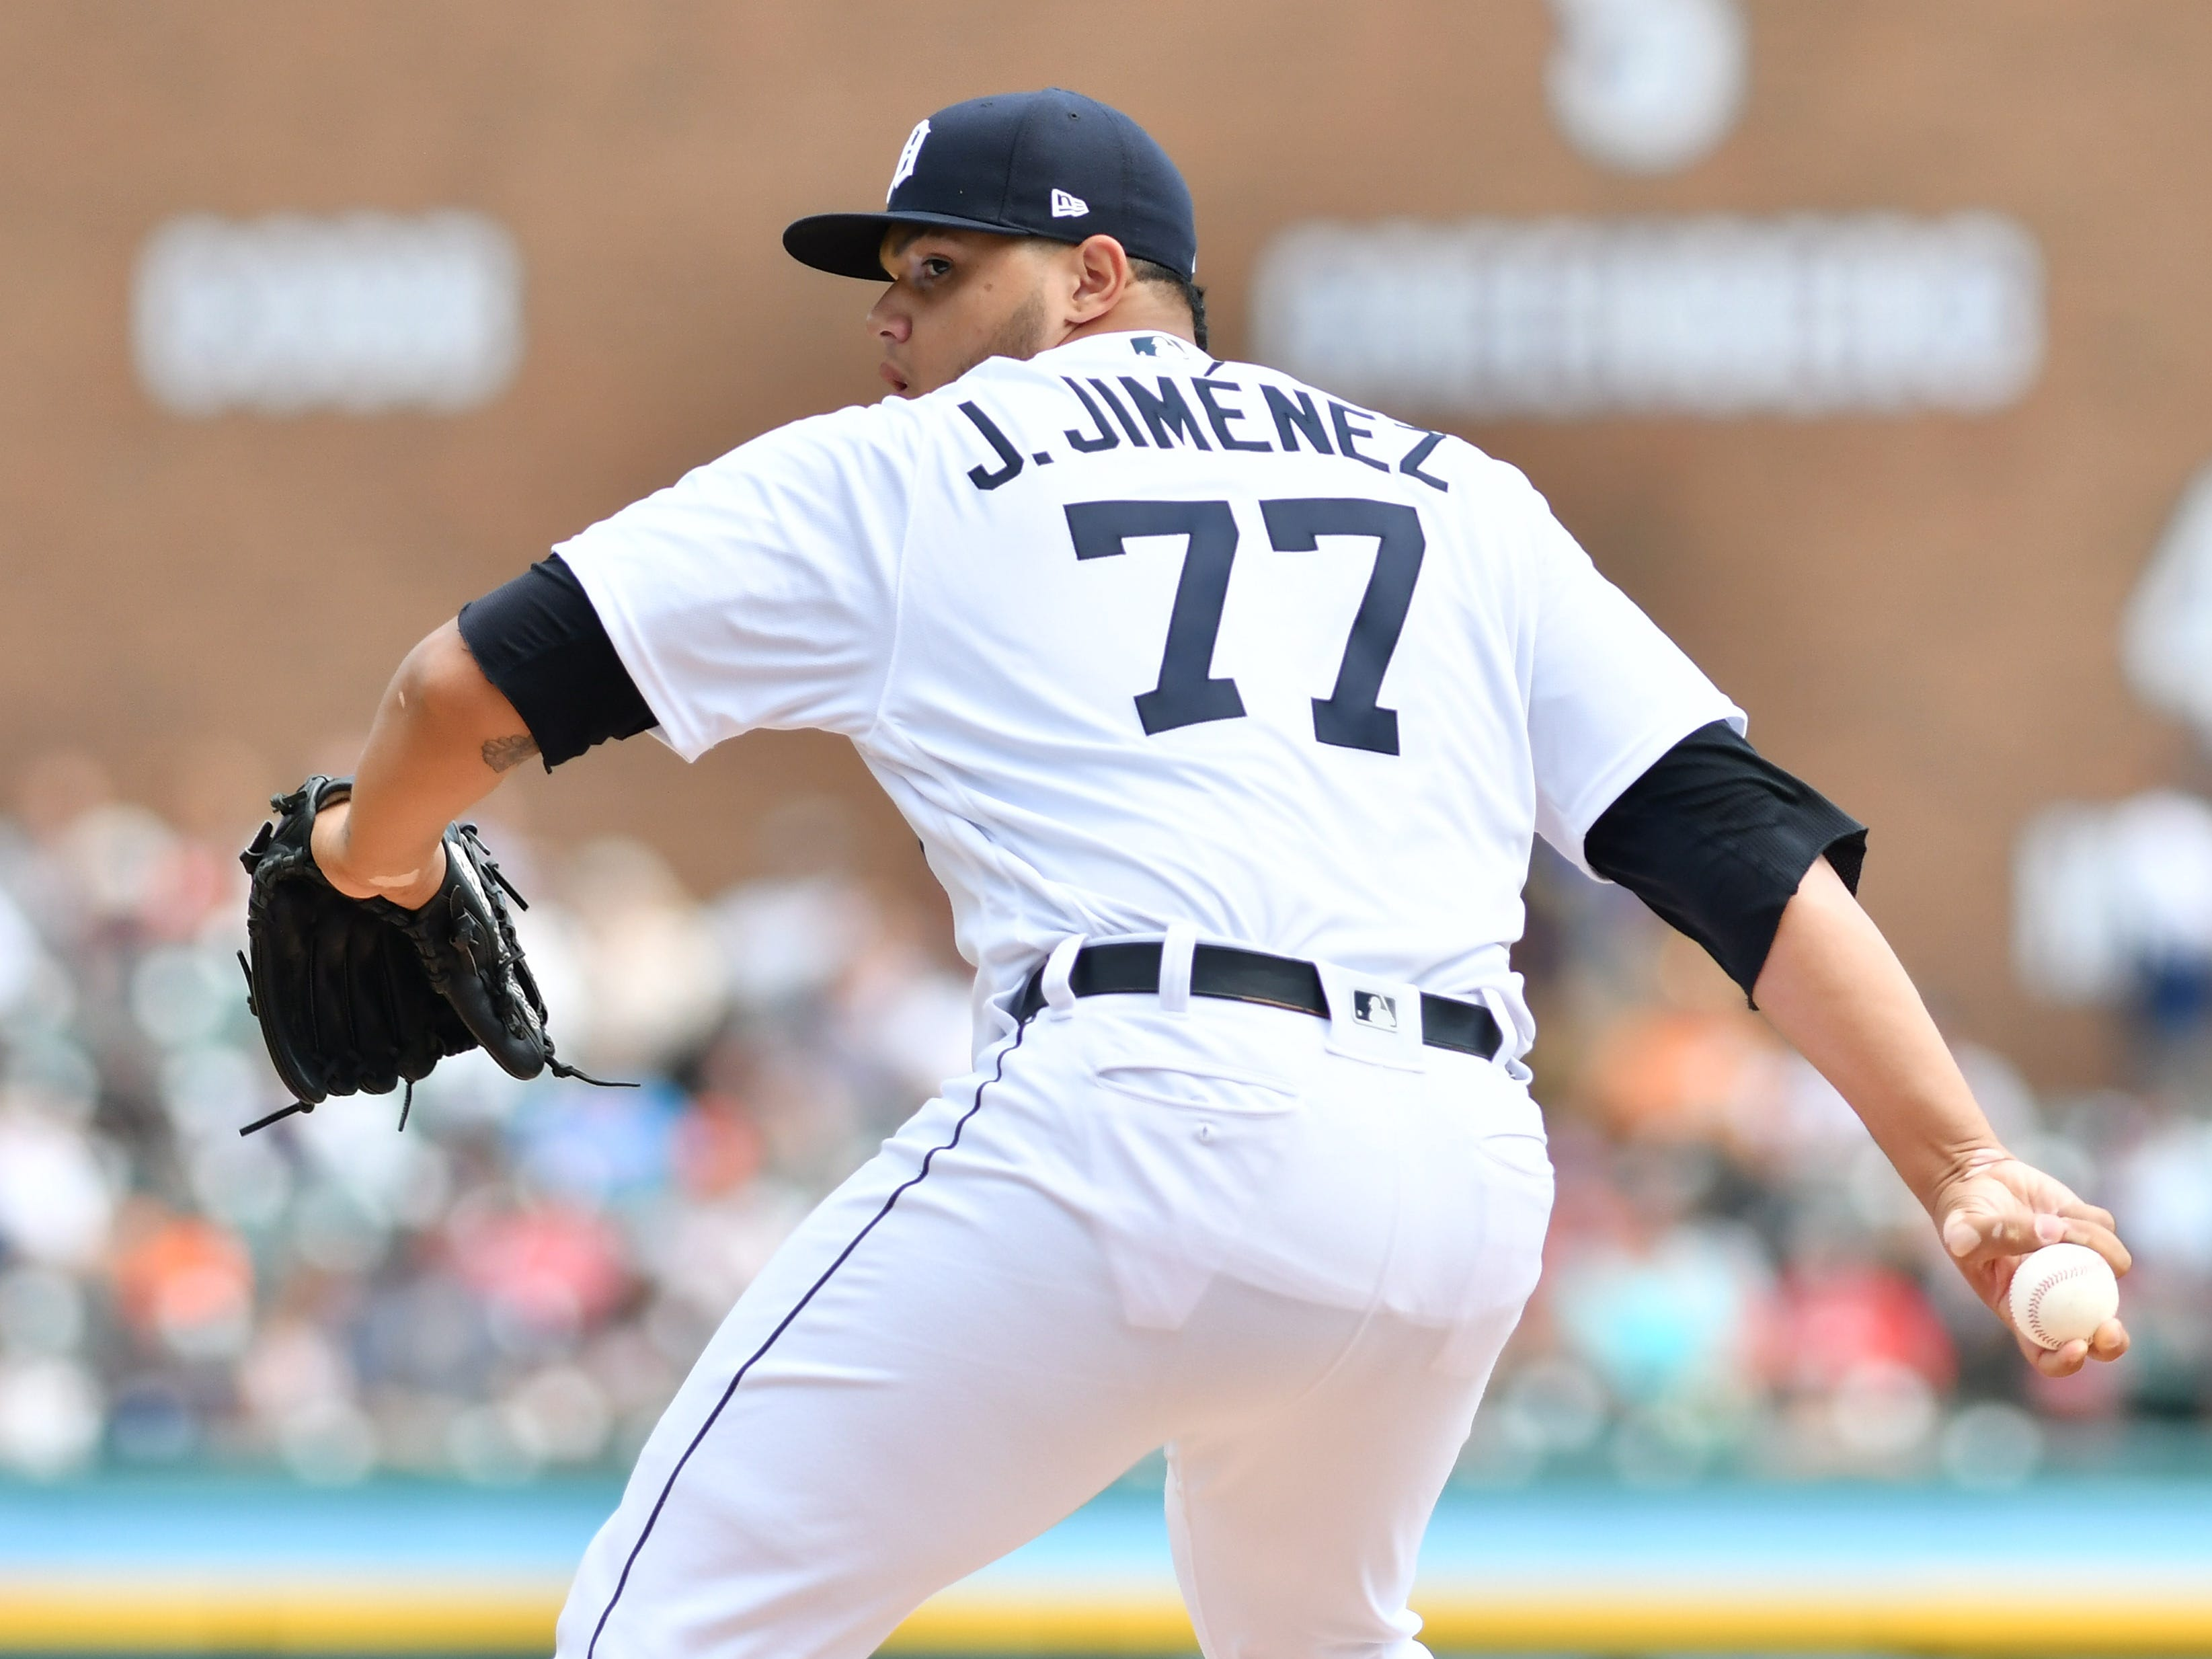 Tigers pitcher Joe Jimenez works in the eighth inning.